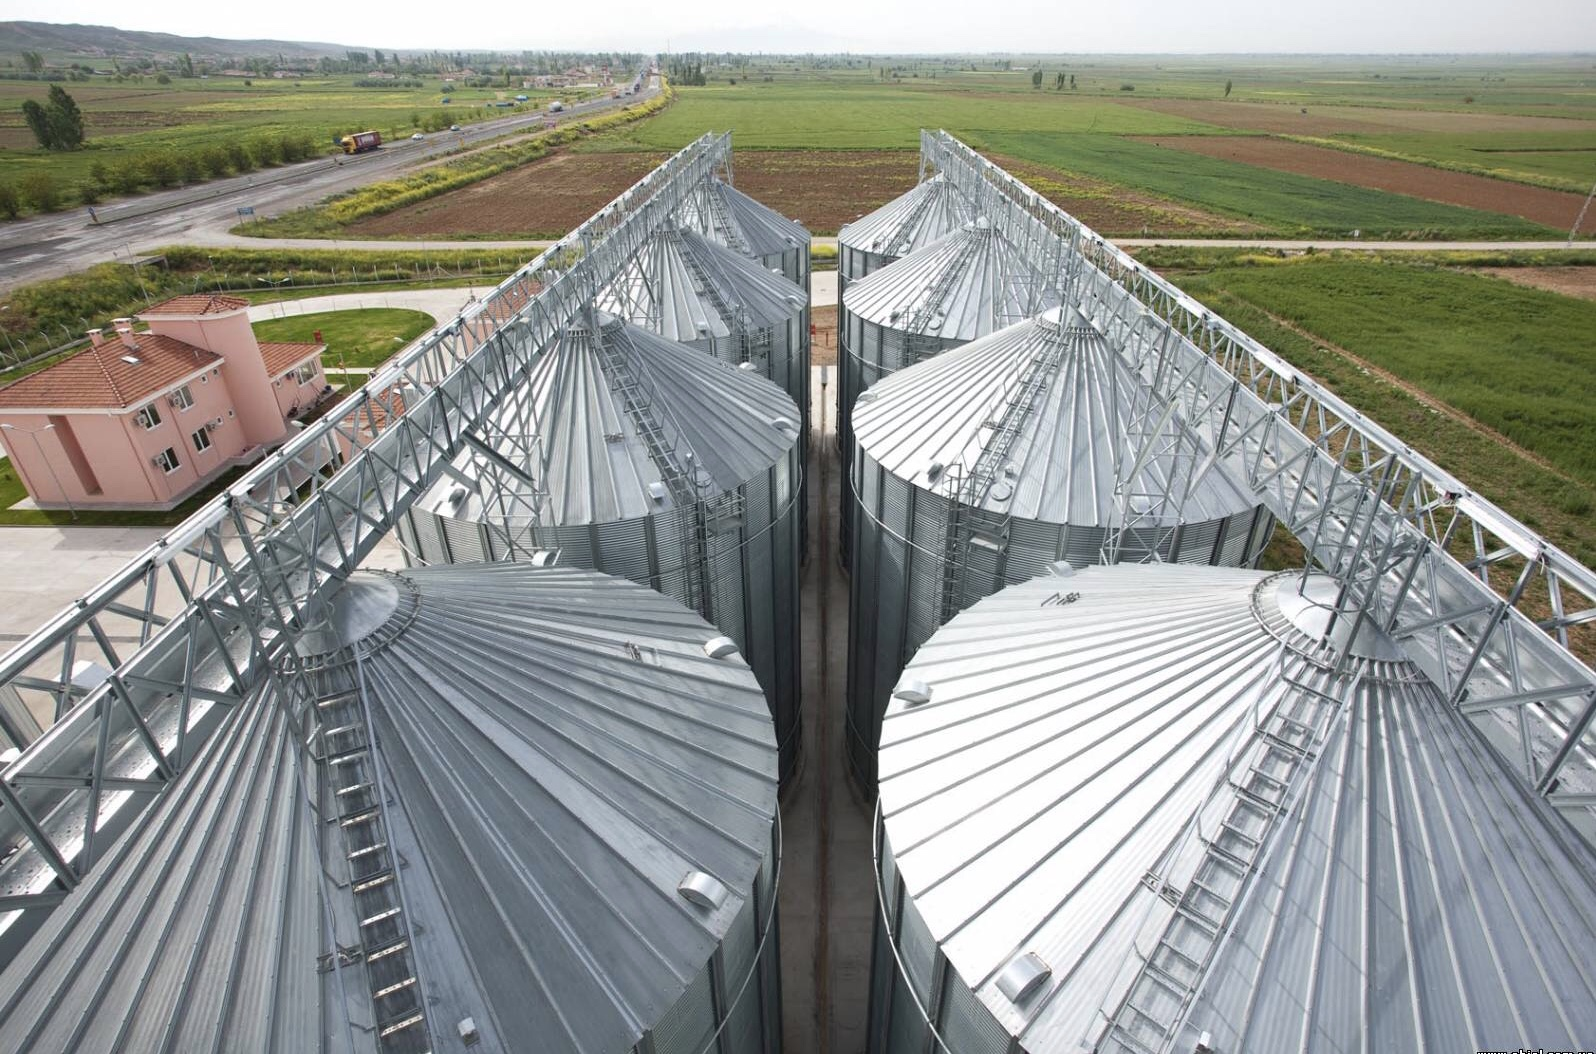 Silos, catwalk top view